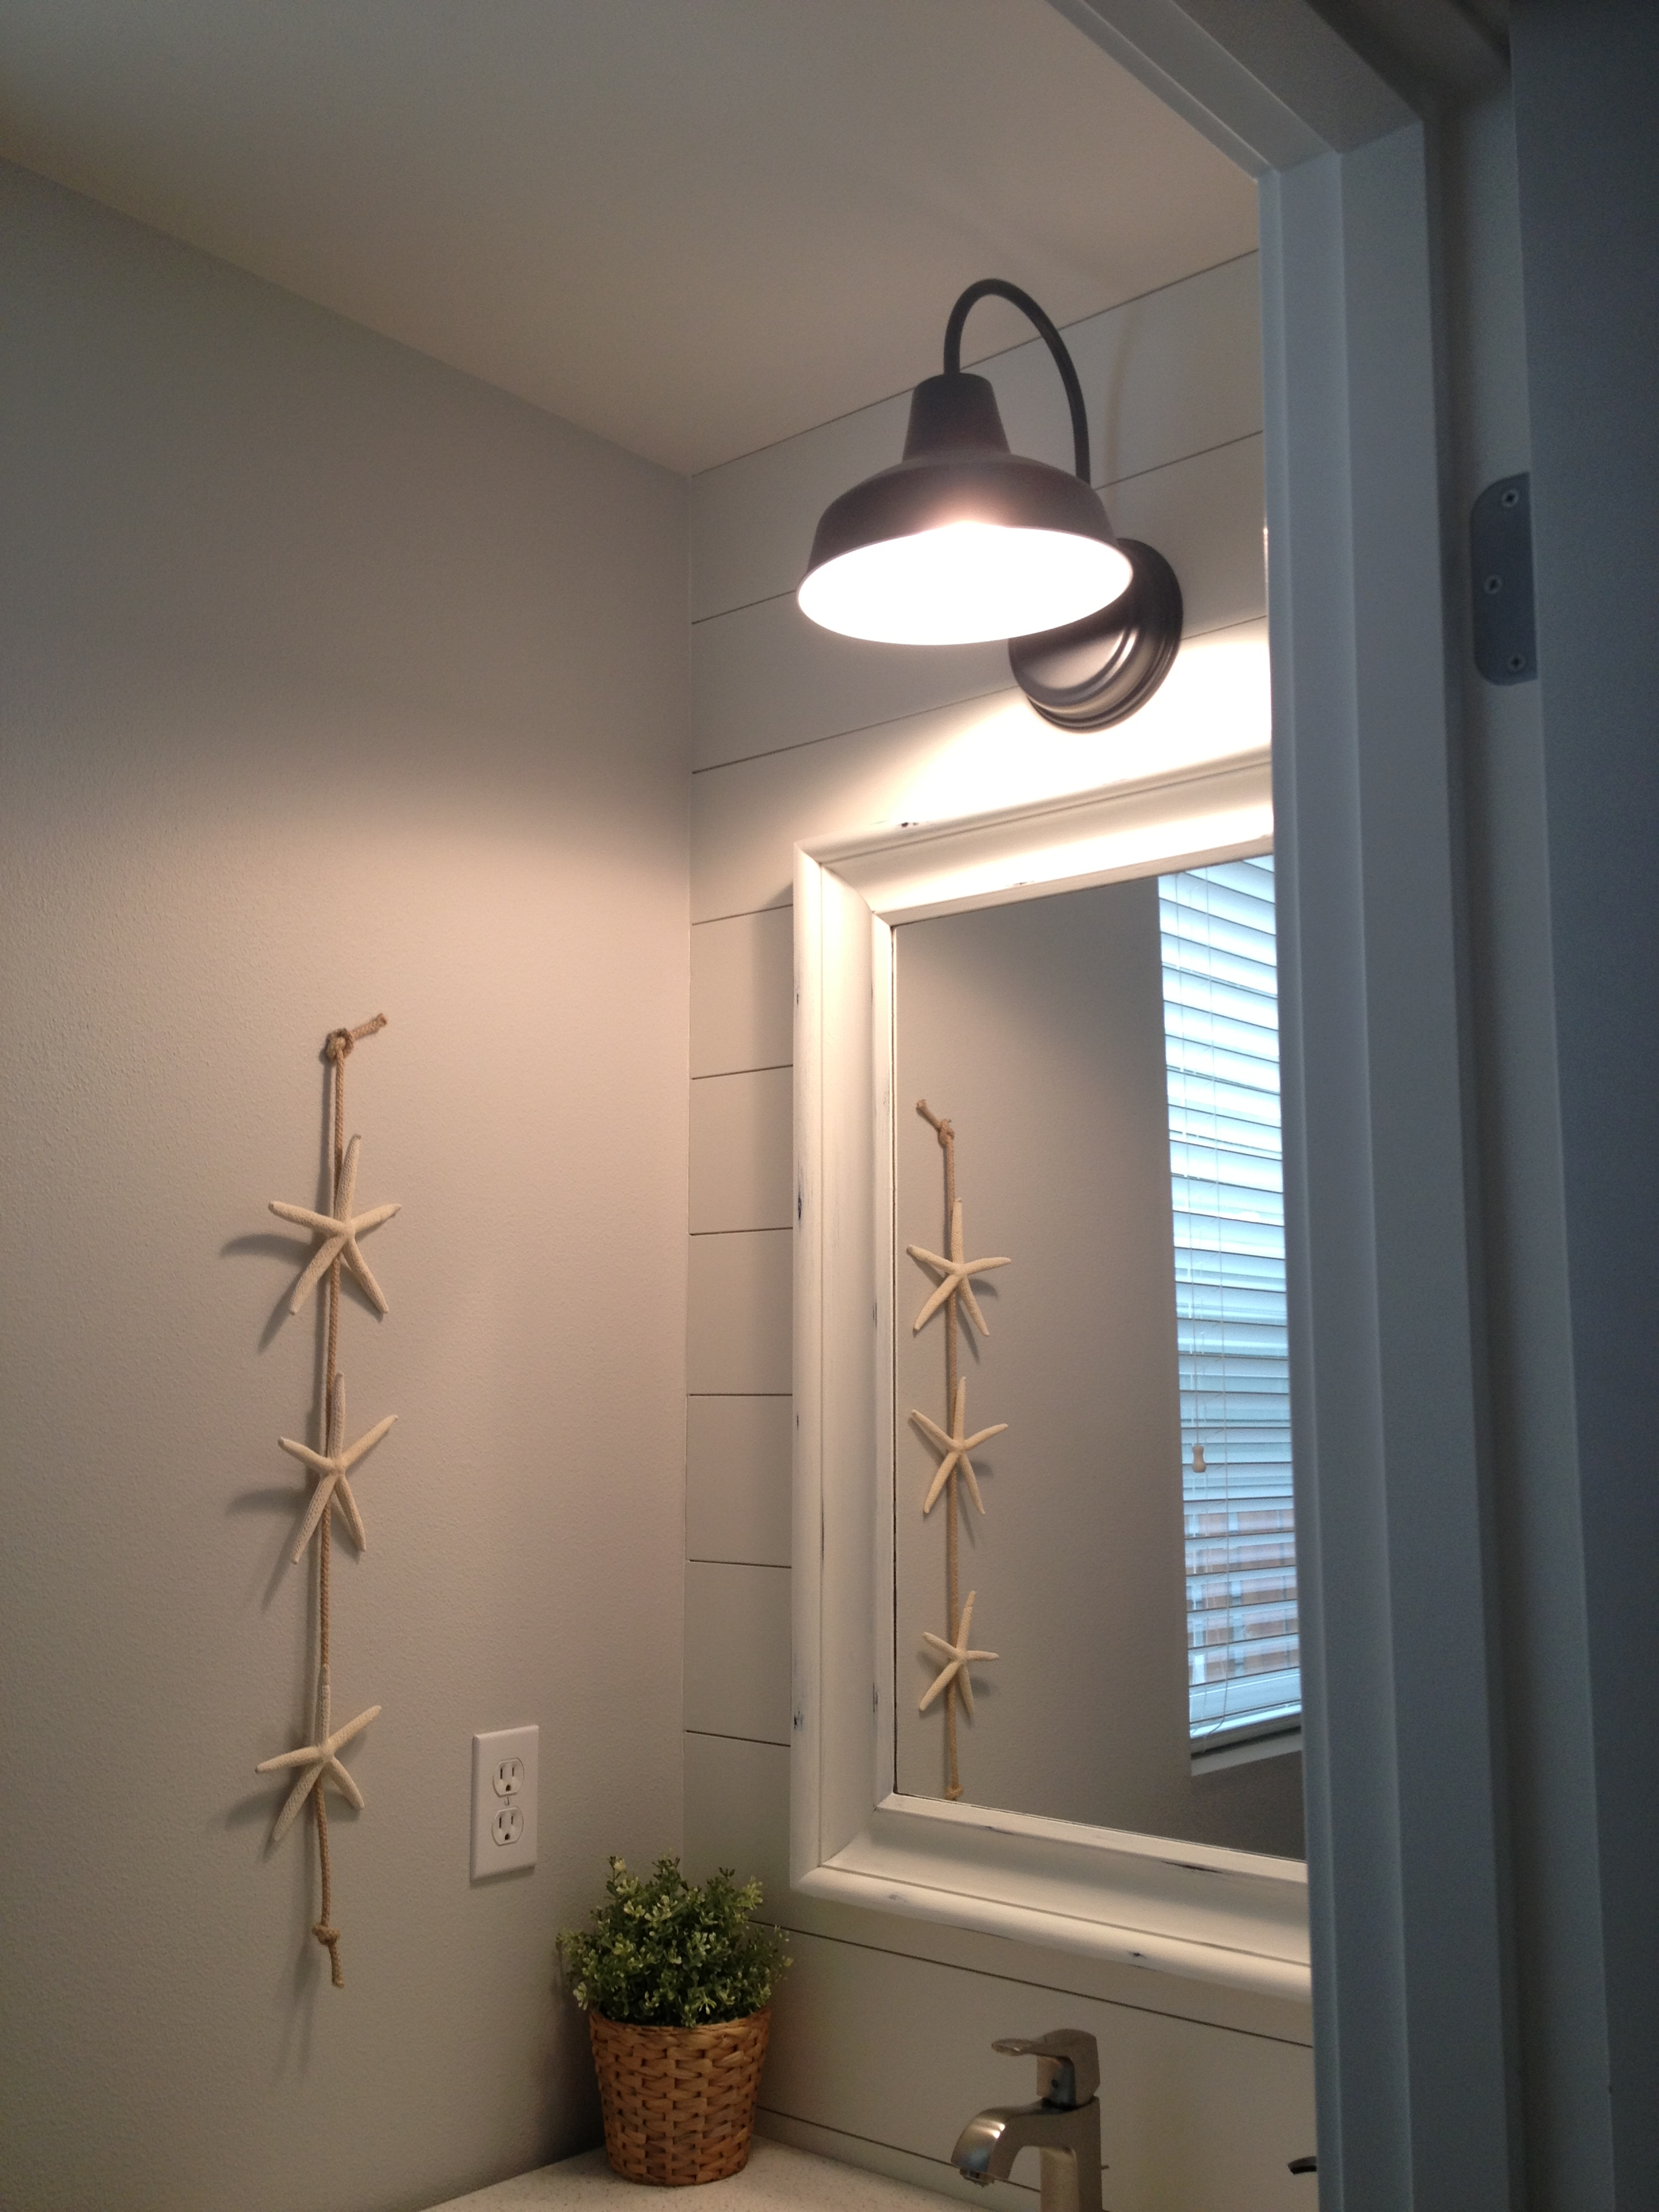 Barn Wall Sconce Lends Farmhouse Look To Powder Room Remake Blog Style Bathroom Vanity